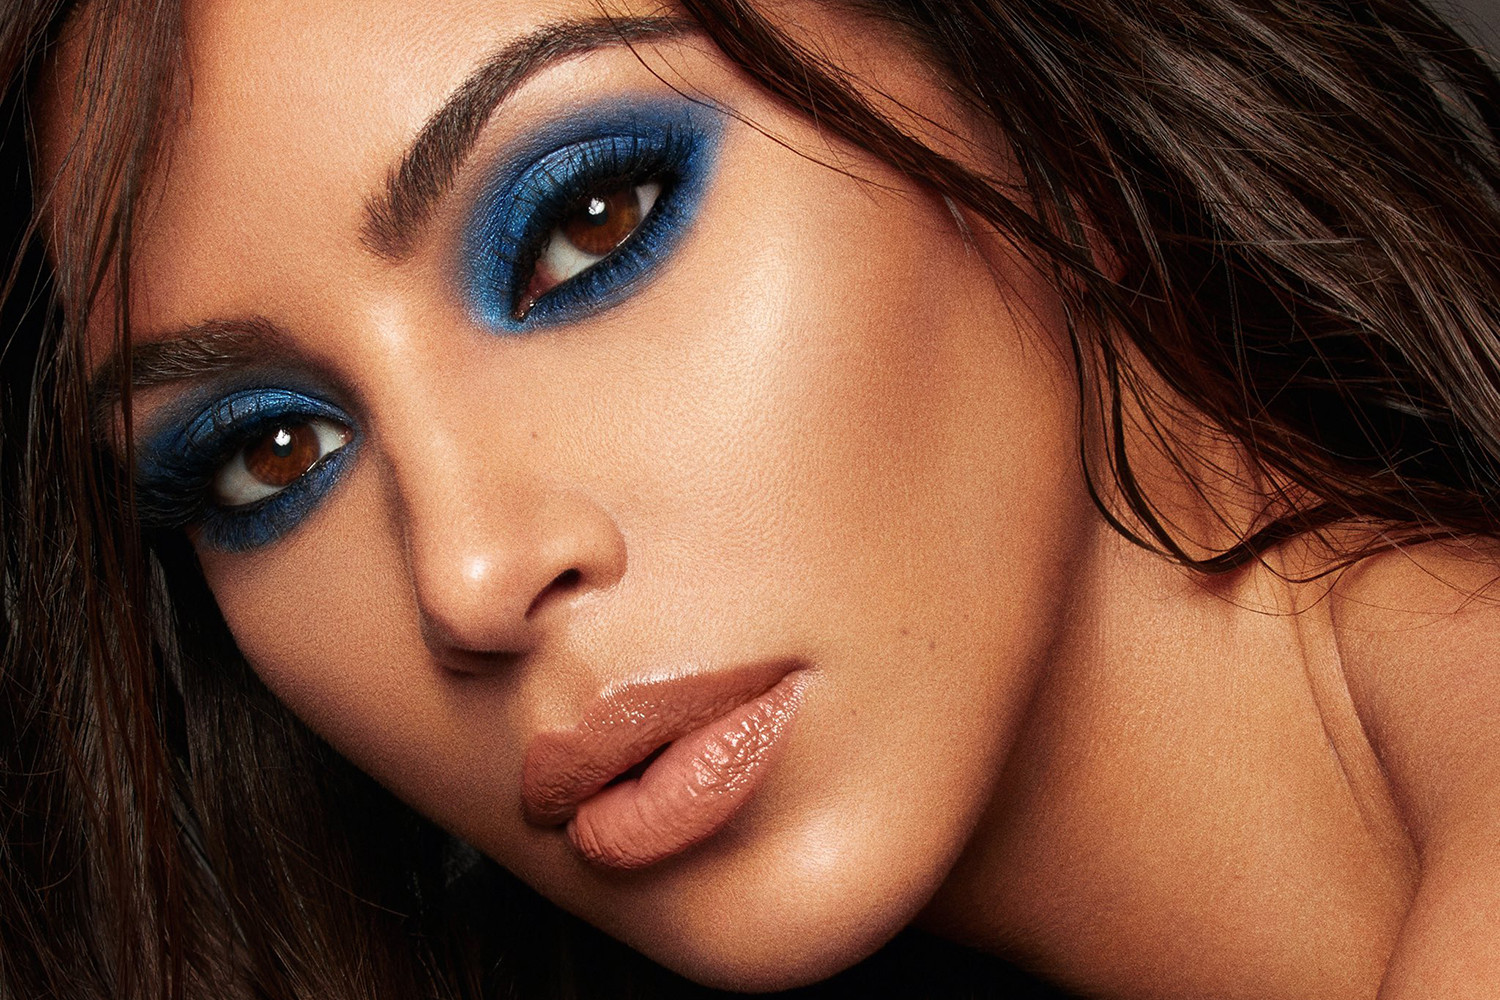 KKW Beauty Kim Kardashian Blue Eyeshadow Mario Dedivanovic